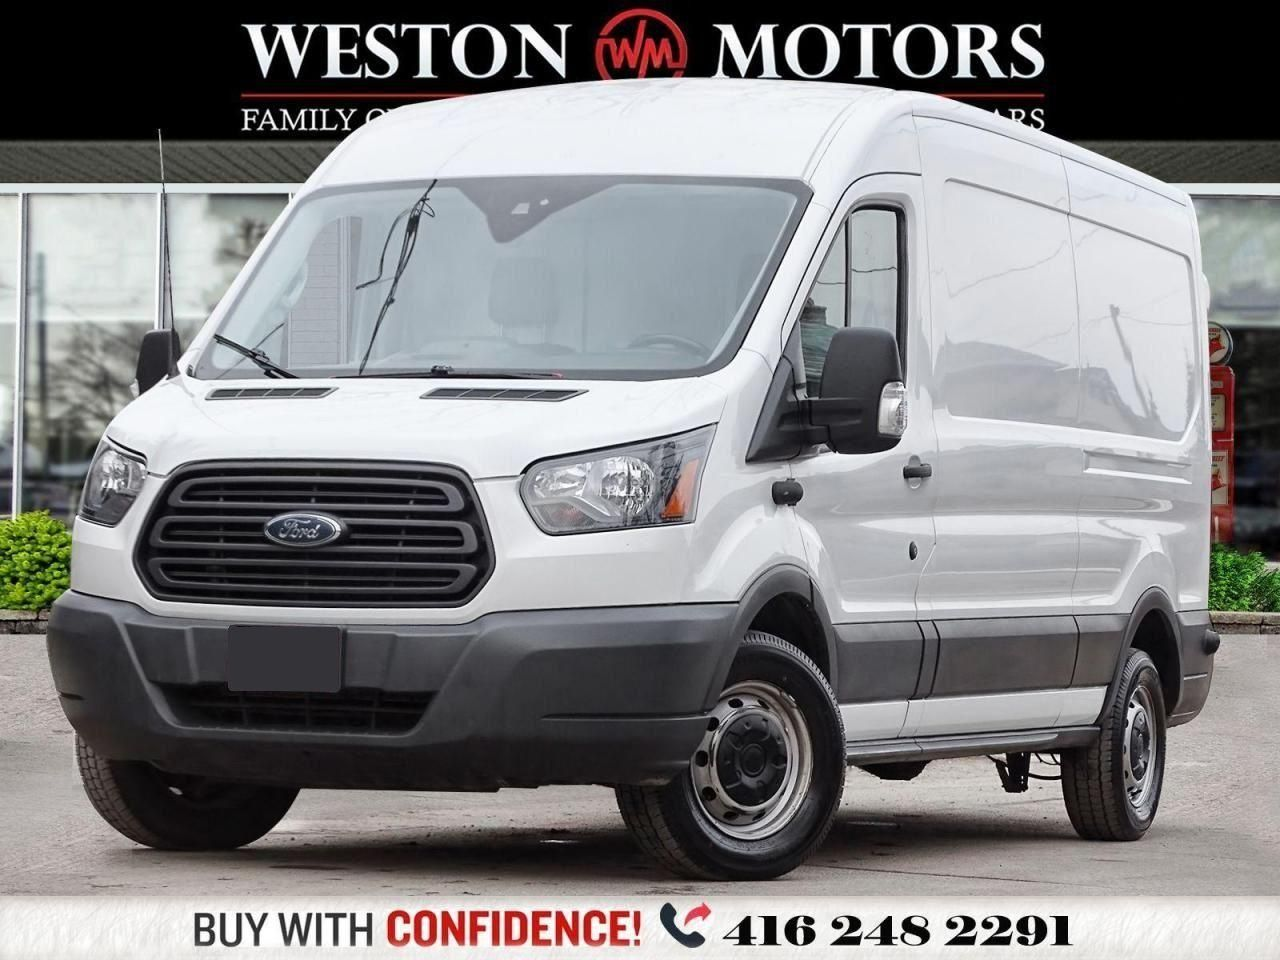 2018 Ford Transit 150 MIDROOF*3.7L*148 EXTENDED WHEEL BASE*REVCAM!!*